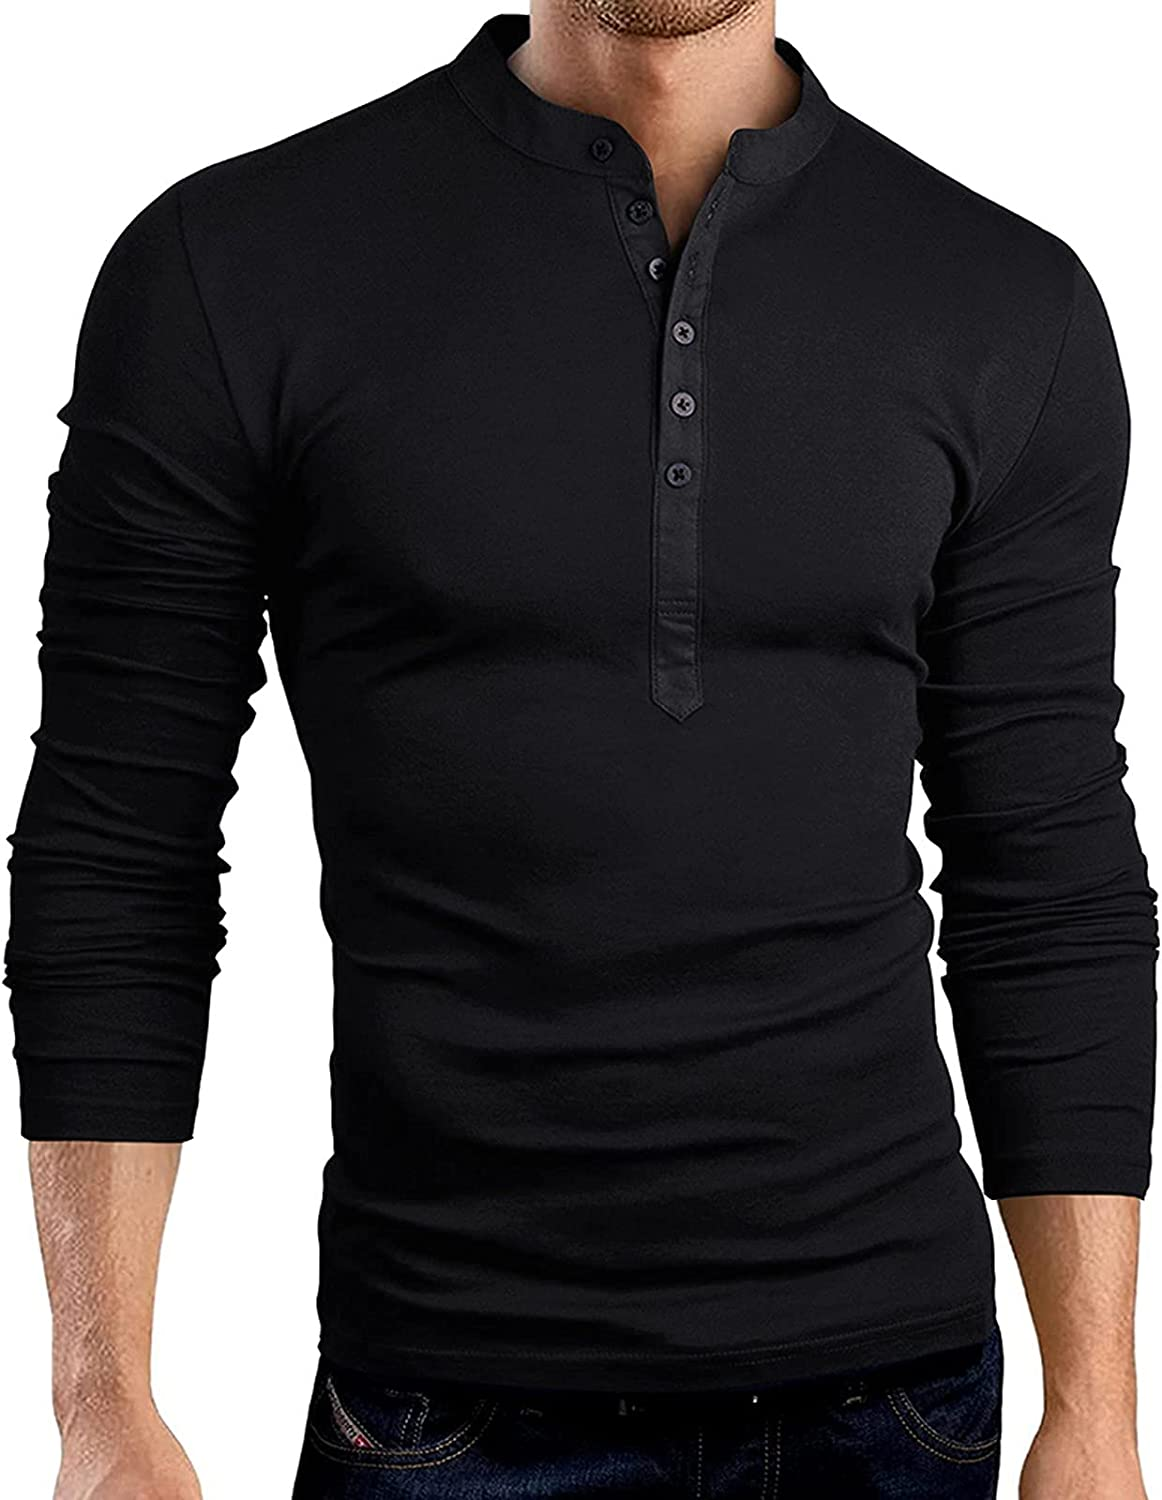 FUNEY Mens Casual Slim Fit Basic Henley Shirt Long Sleeve Fashion T-Shirt Cotton Muscle Fitted Athletic V Neck Shirts Tops